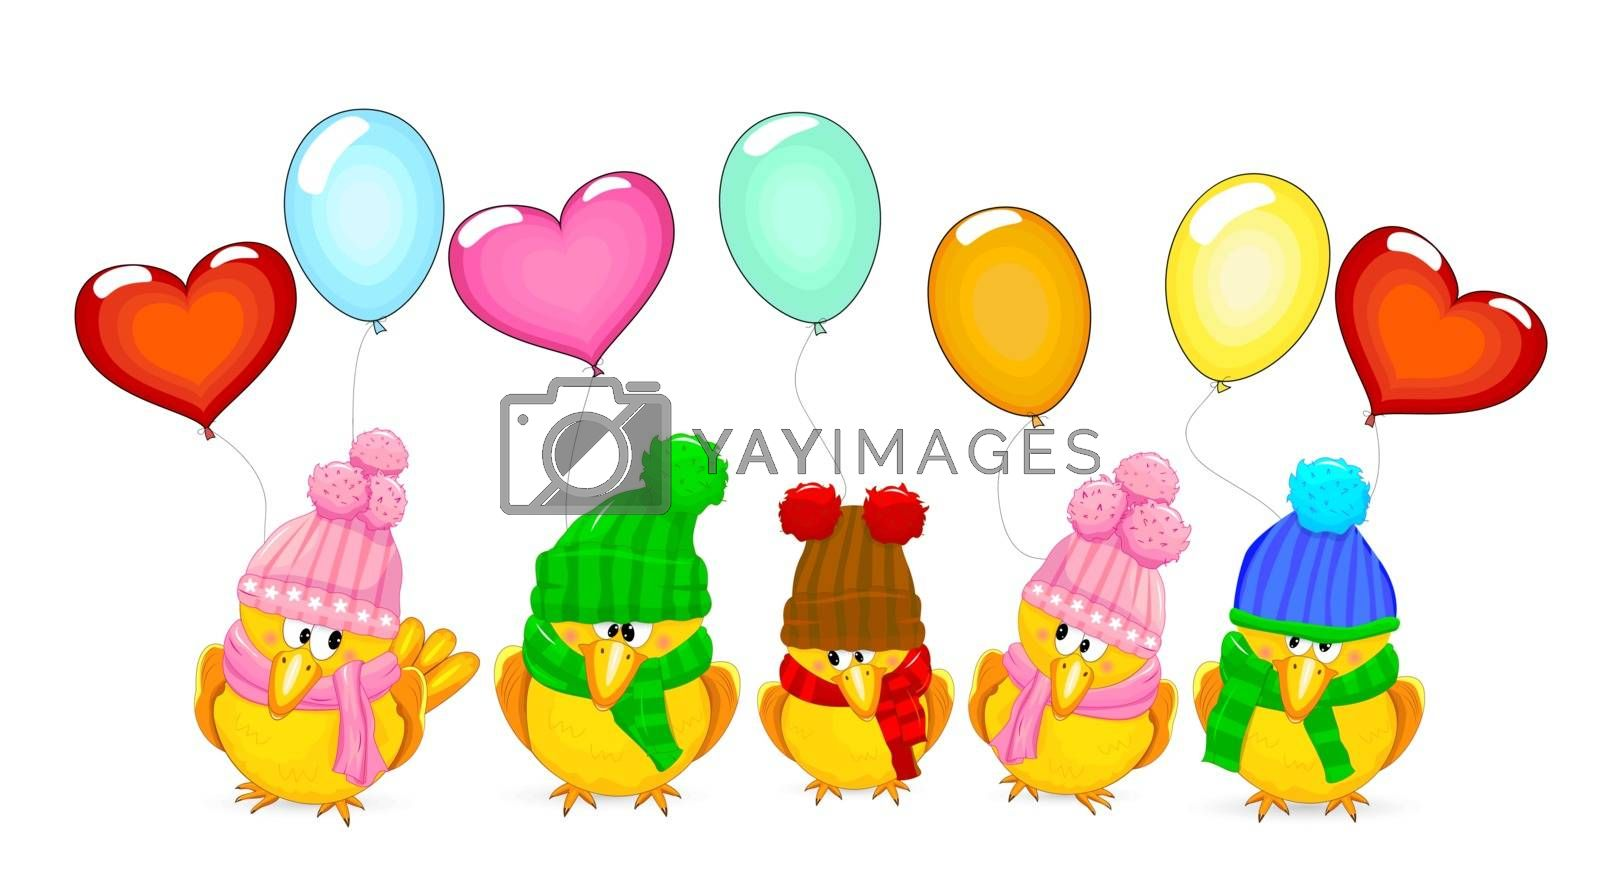 Birds with balloons on a white background. Birds dressed in knitted hats.